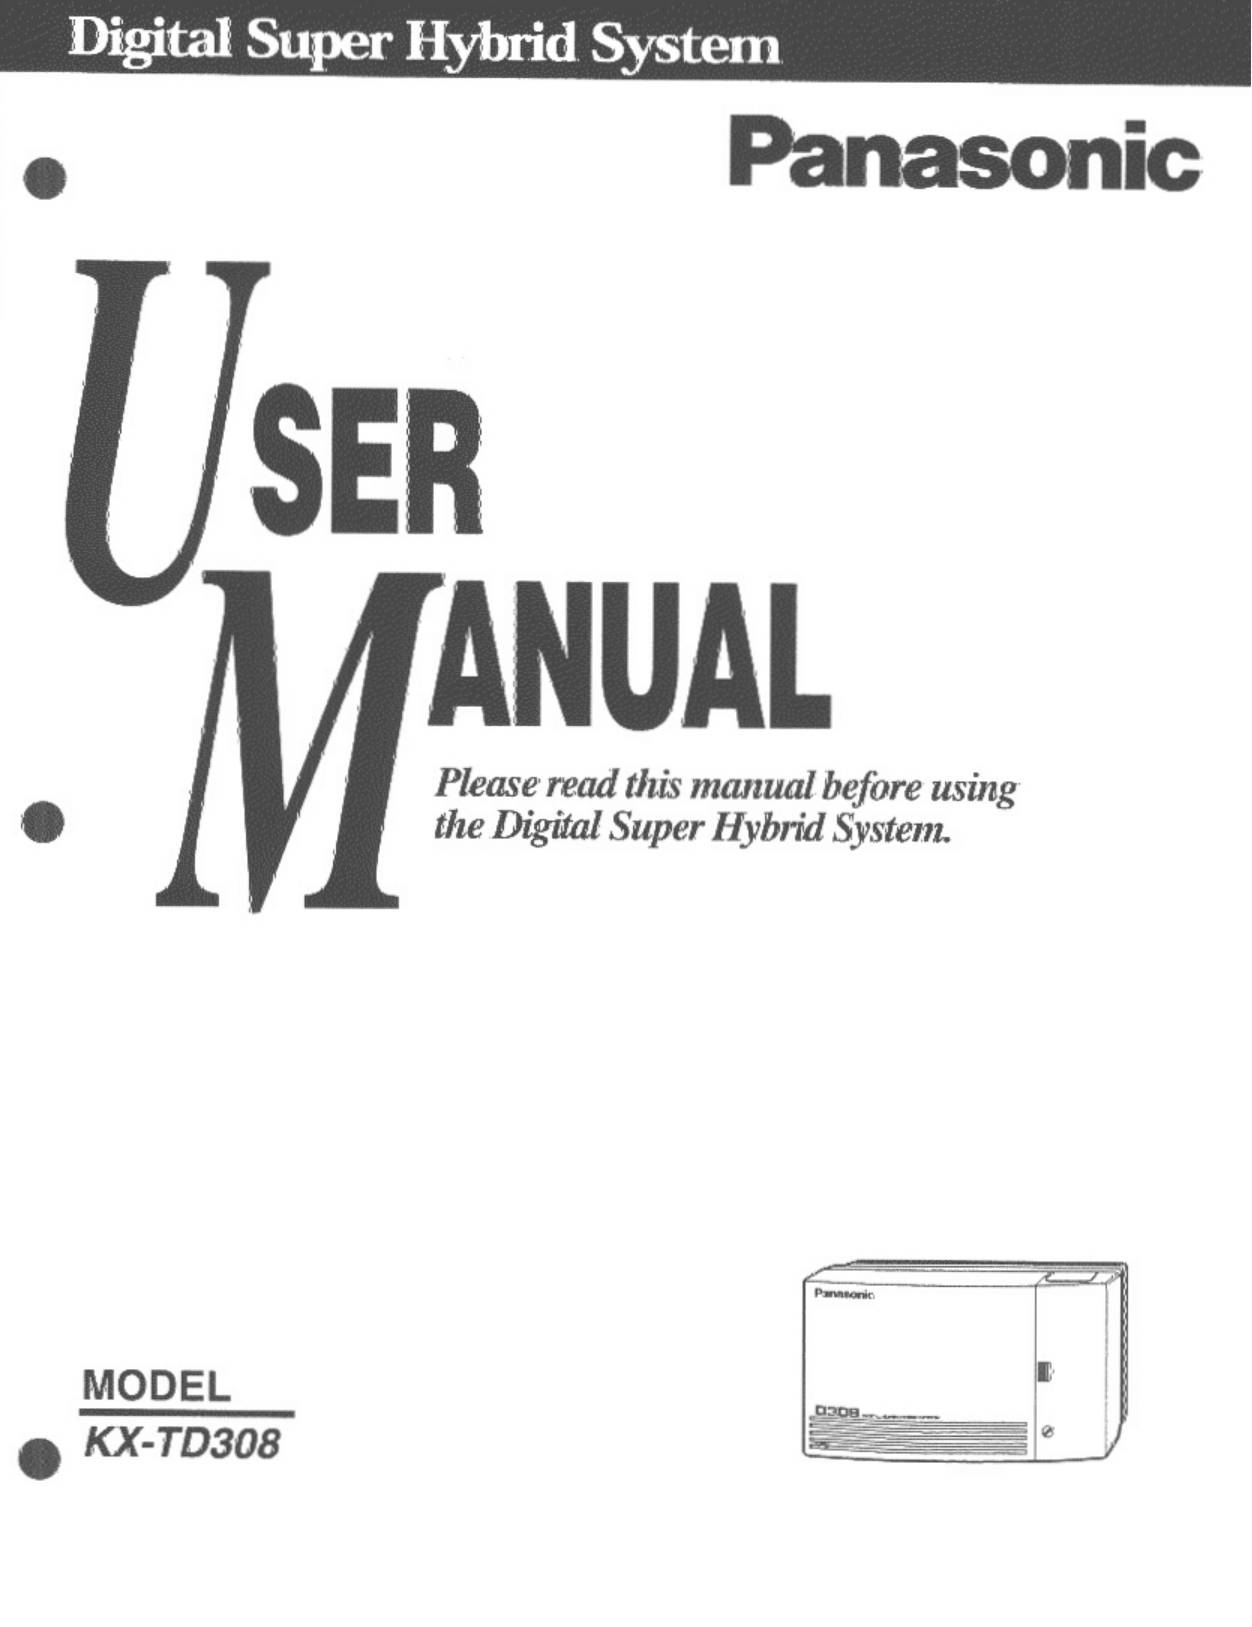 panasonic kx t7431 user manual